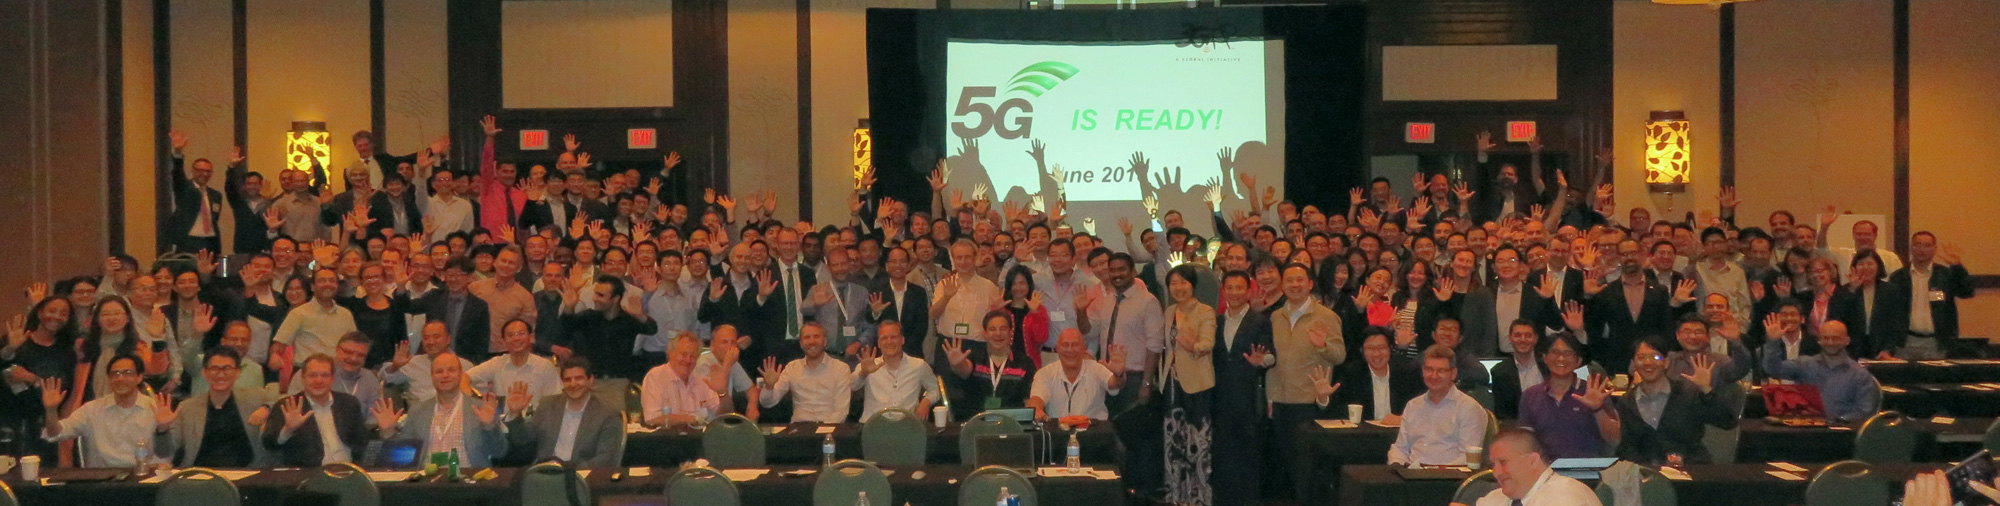 5G-is-ready 2000px